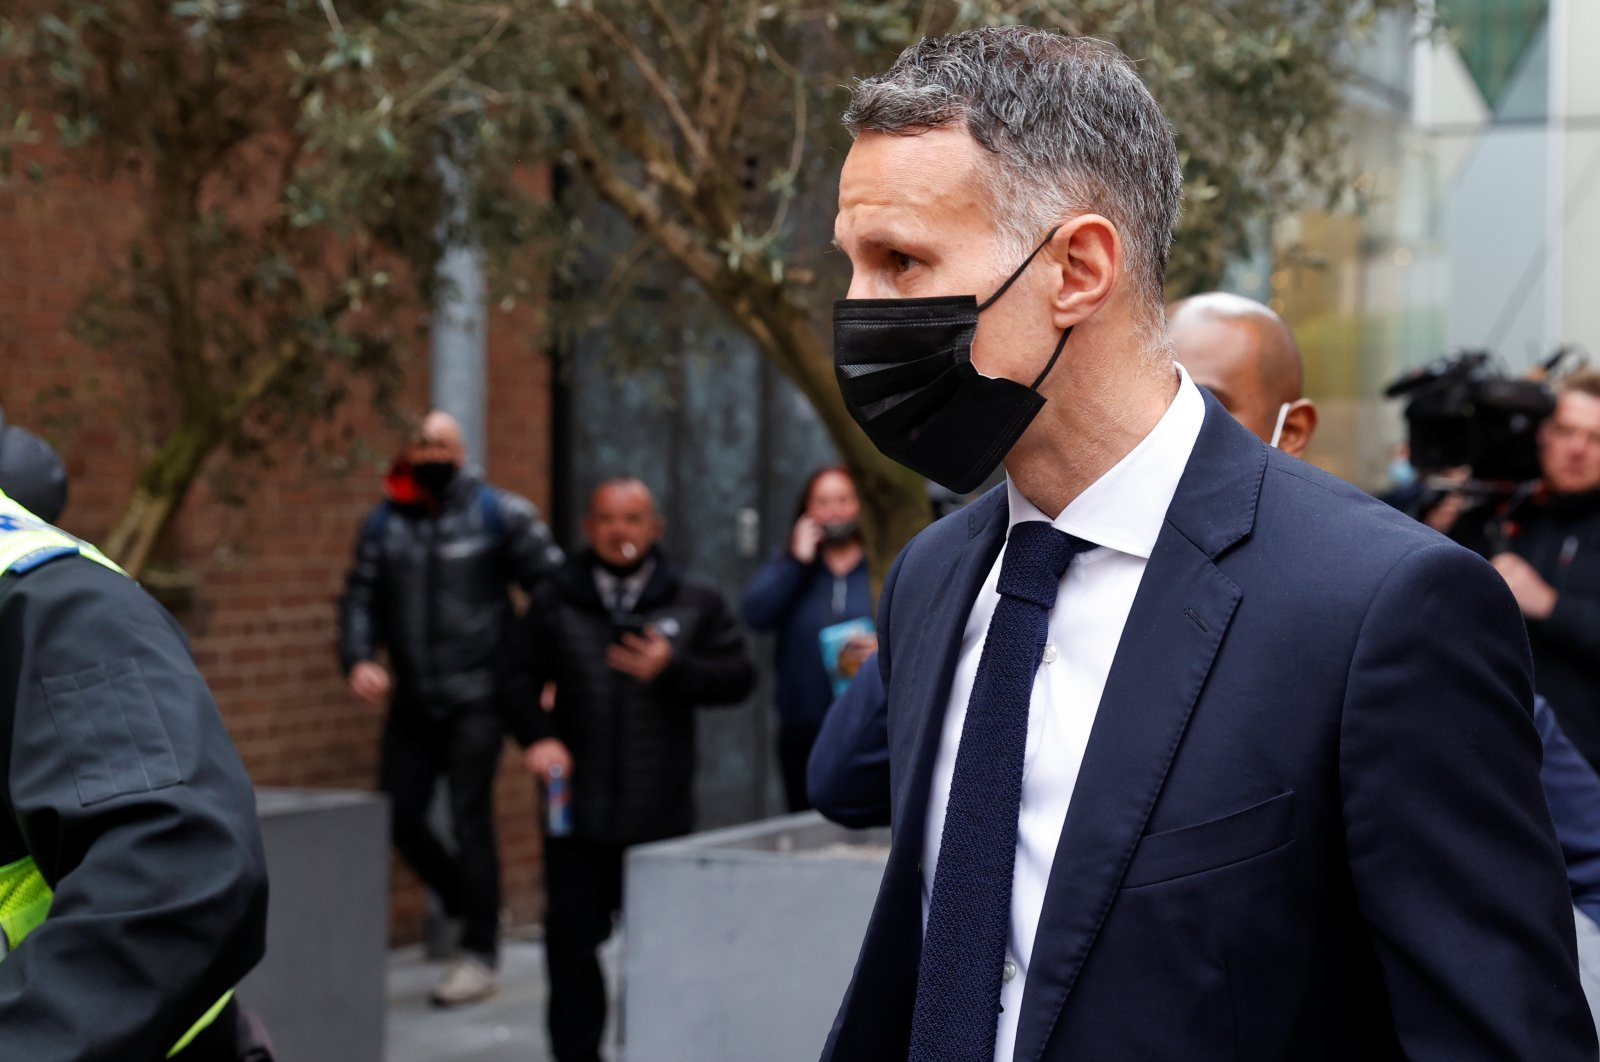 Former Manchester United footballer Ryan Giggs leaves Manchester and Salford Magistrates Court in Manchester, Britain, April 28, 2021. (Reuters Photo)